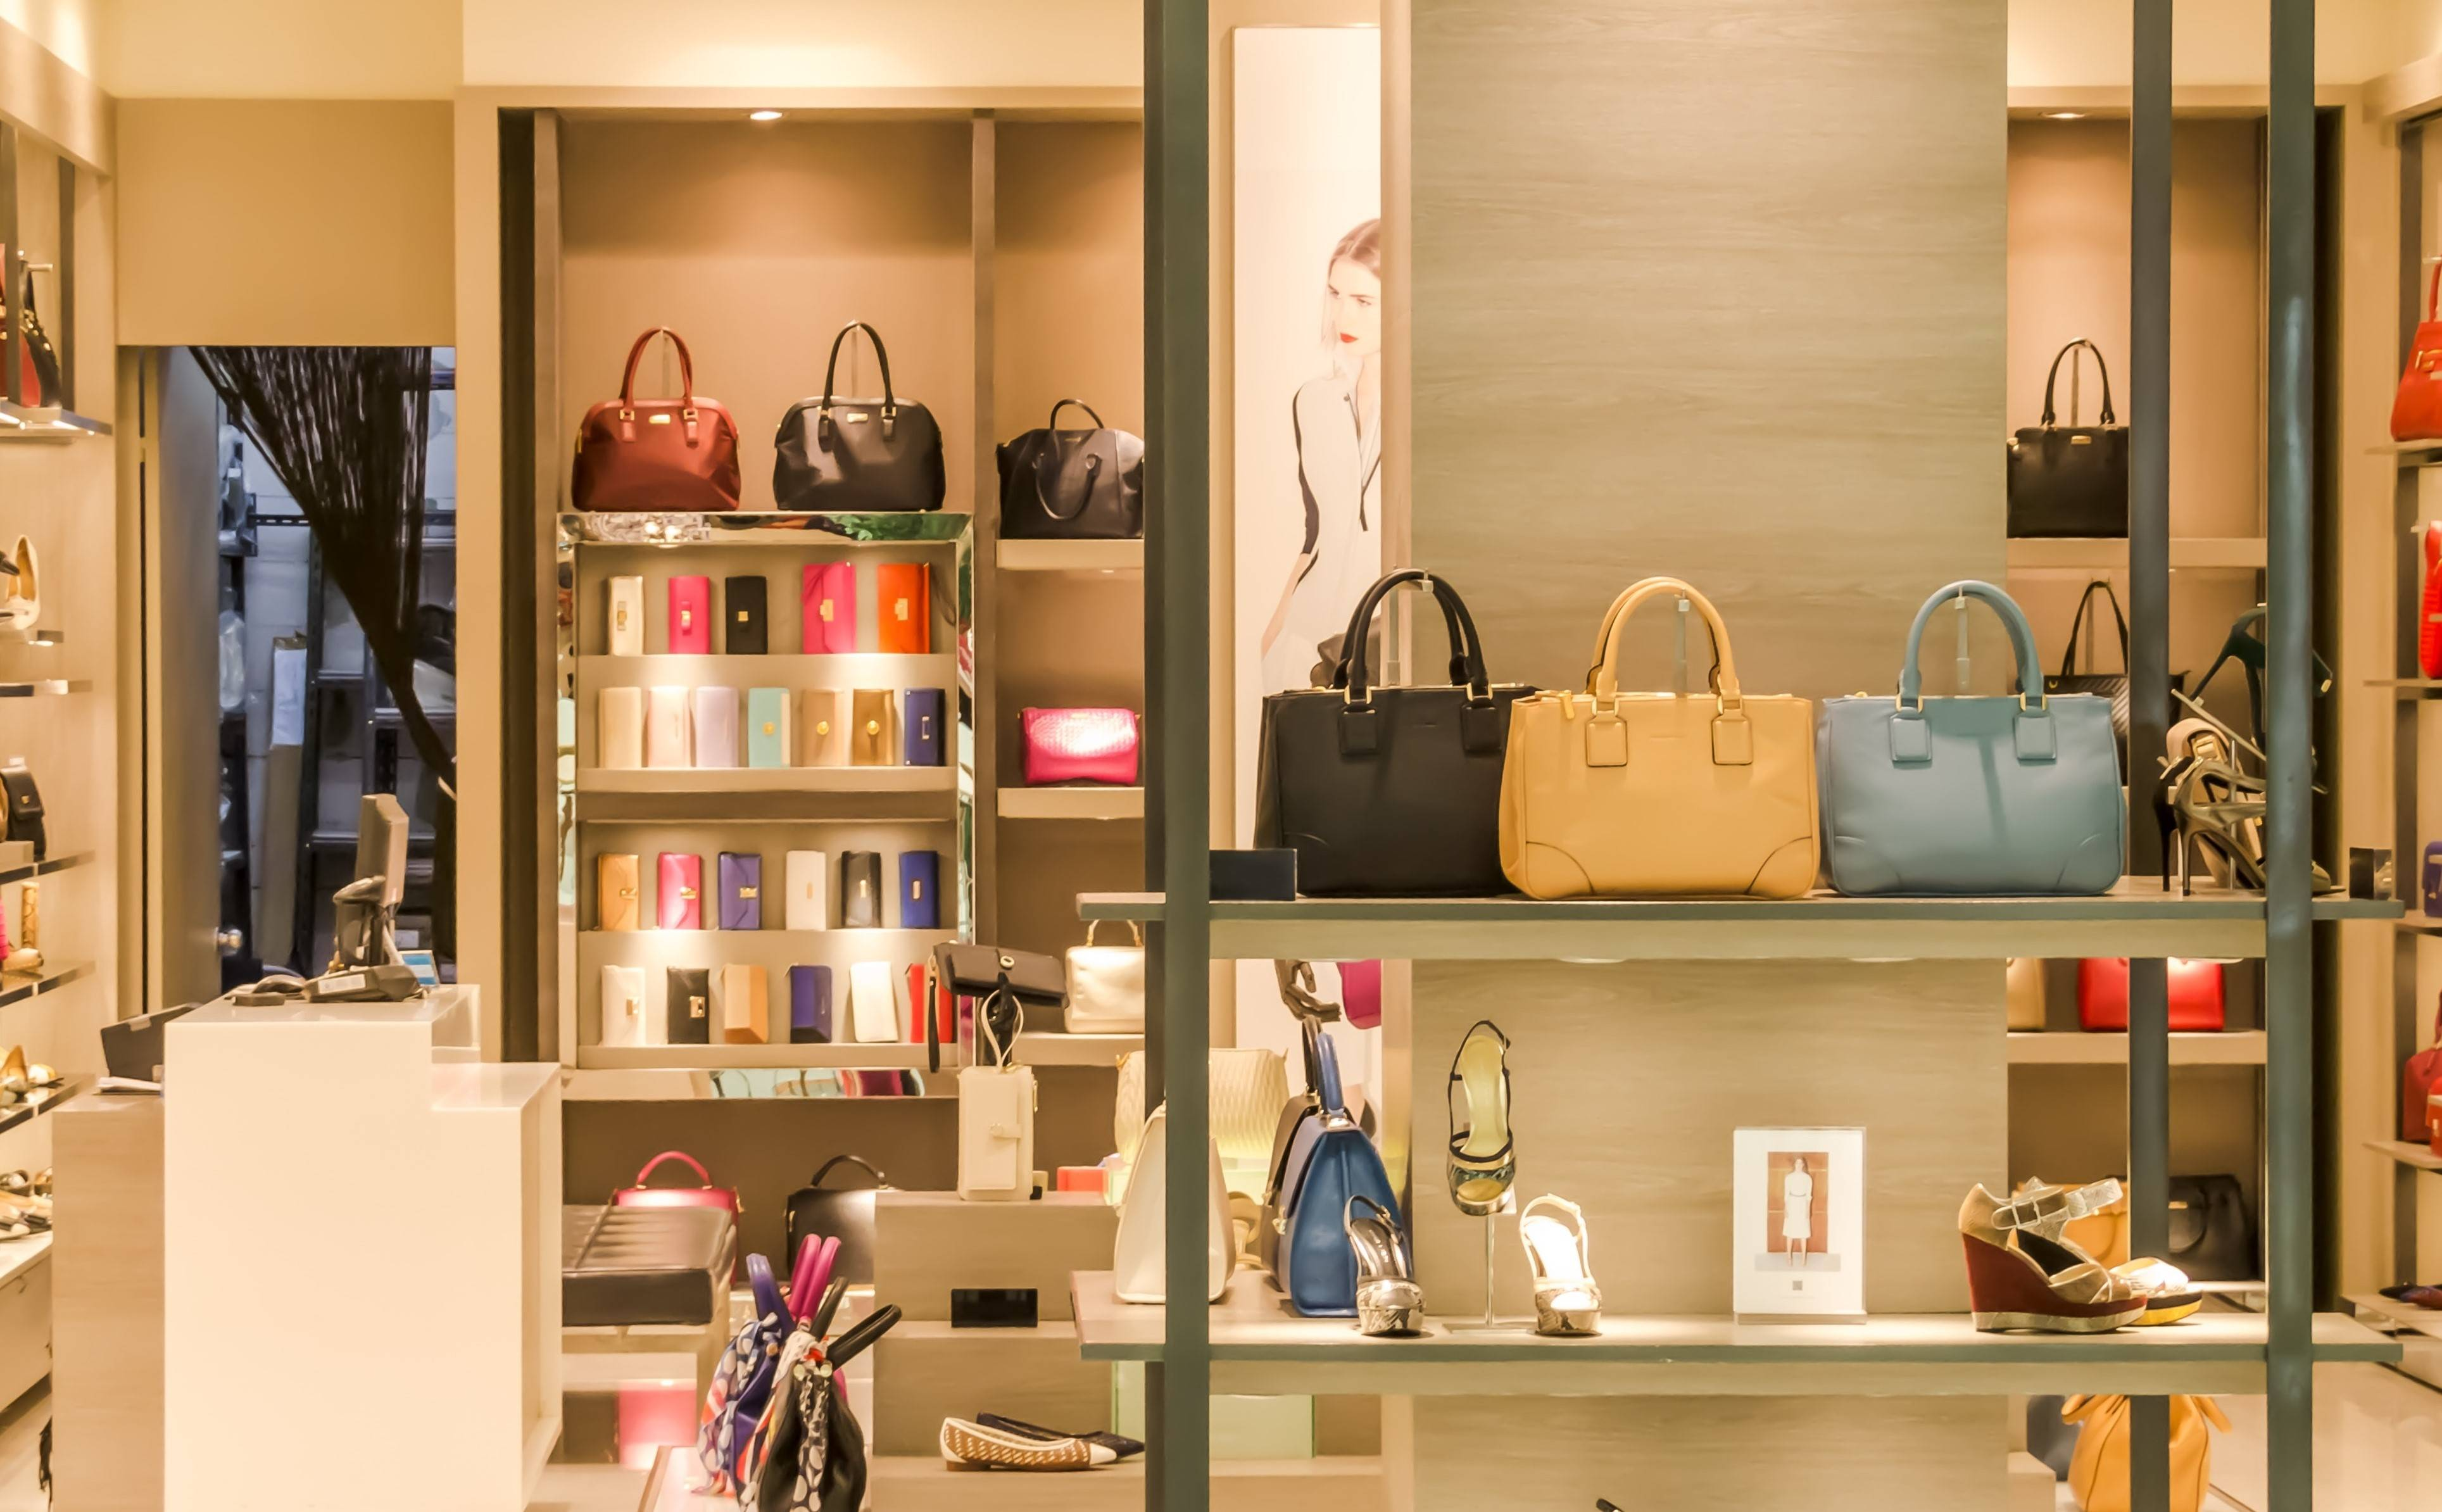 Reviewed: Global Bag Trends by Segment